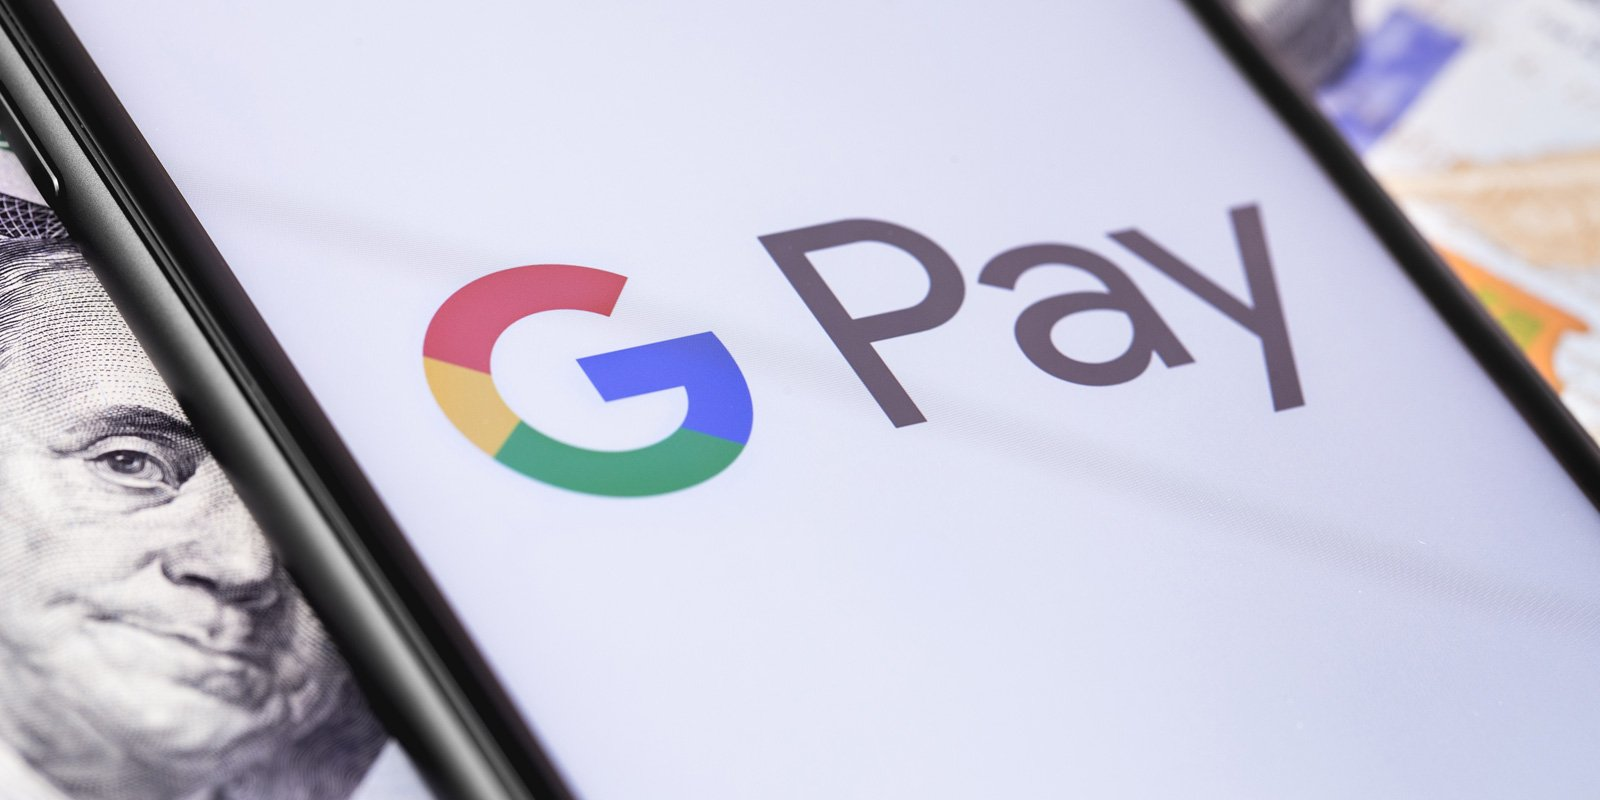 Amex Cards Removed From Google Pay Due To Expired Certificate